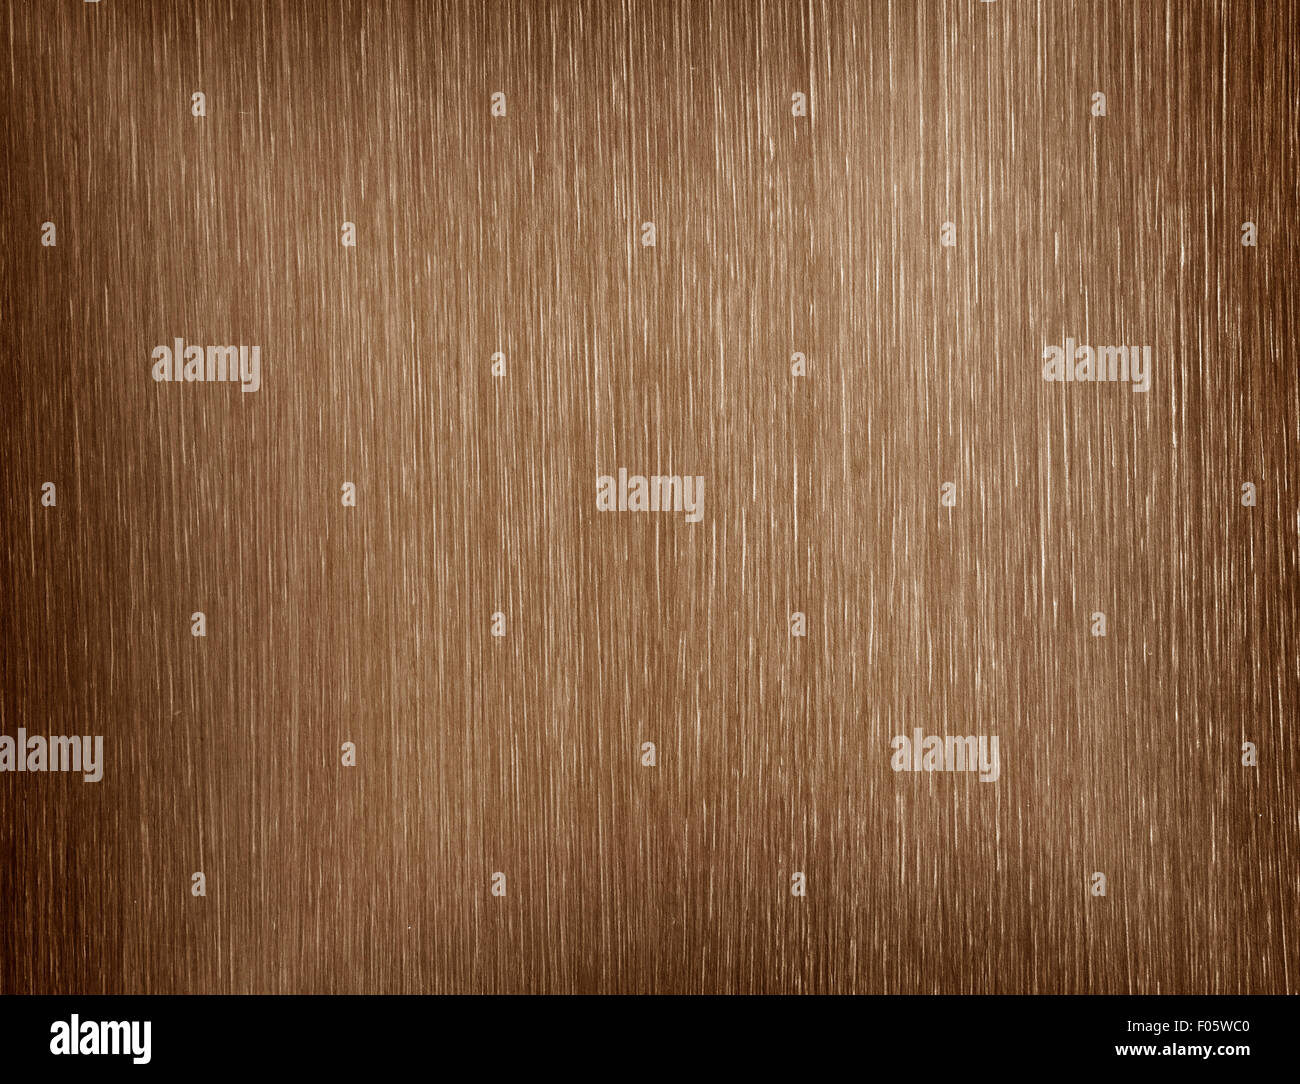 Laminated brown background. Abstract pattern background texture. - Stock Image